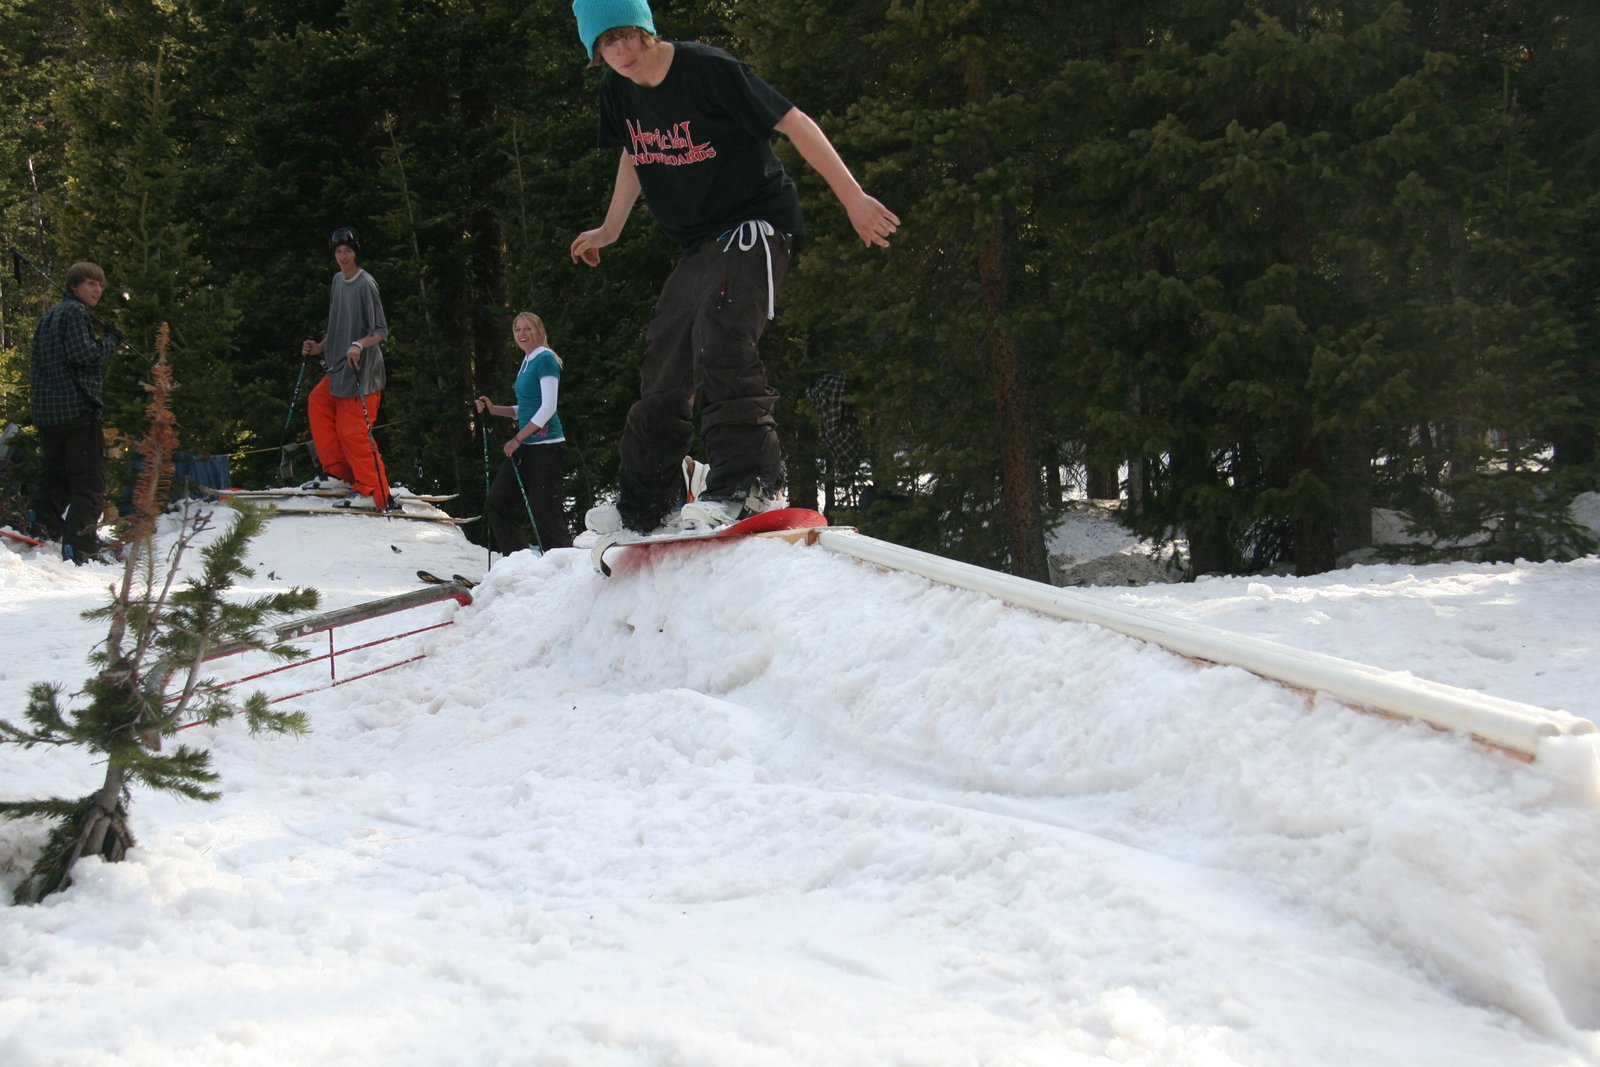 Doing things one footed